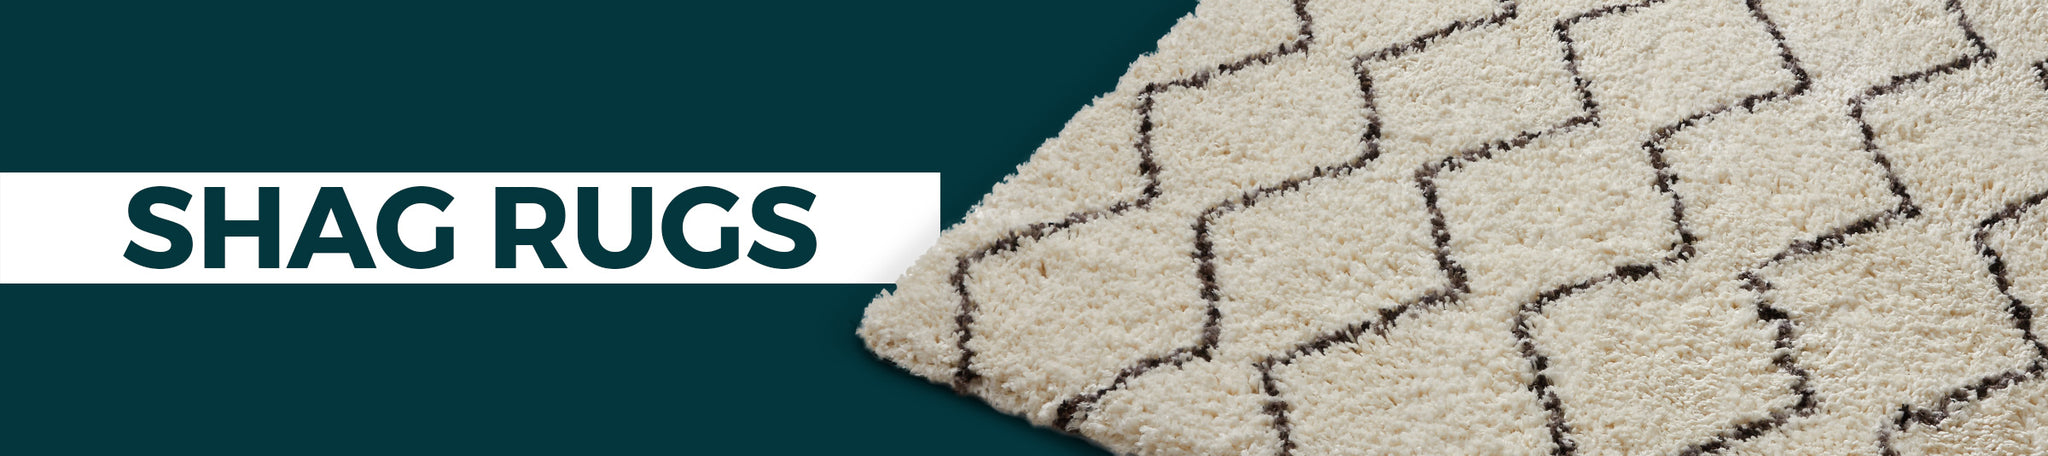 Shag Rugs Collection from Well Woven